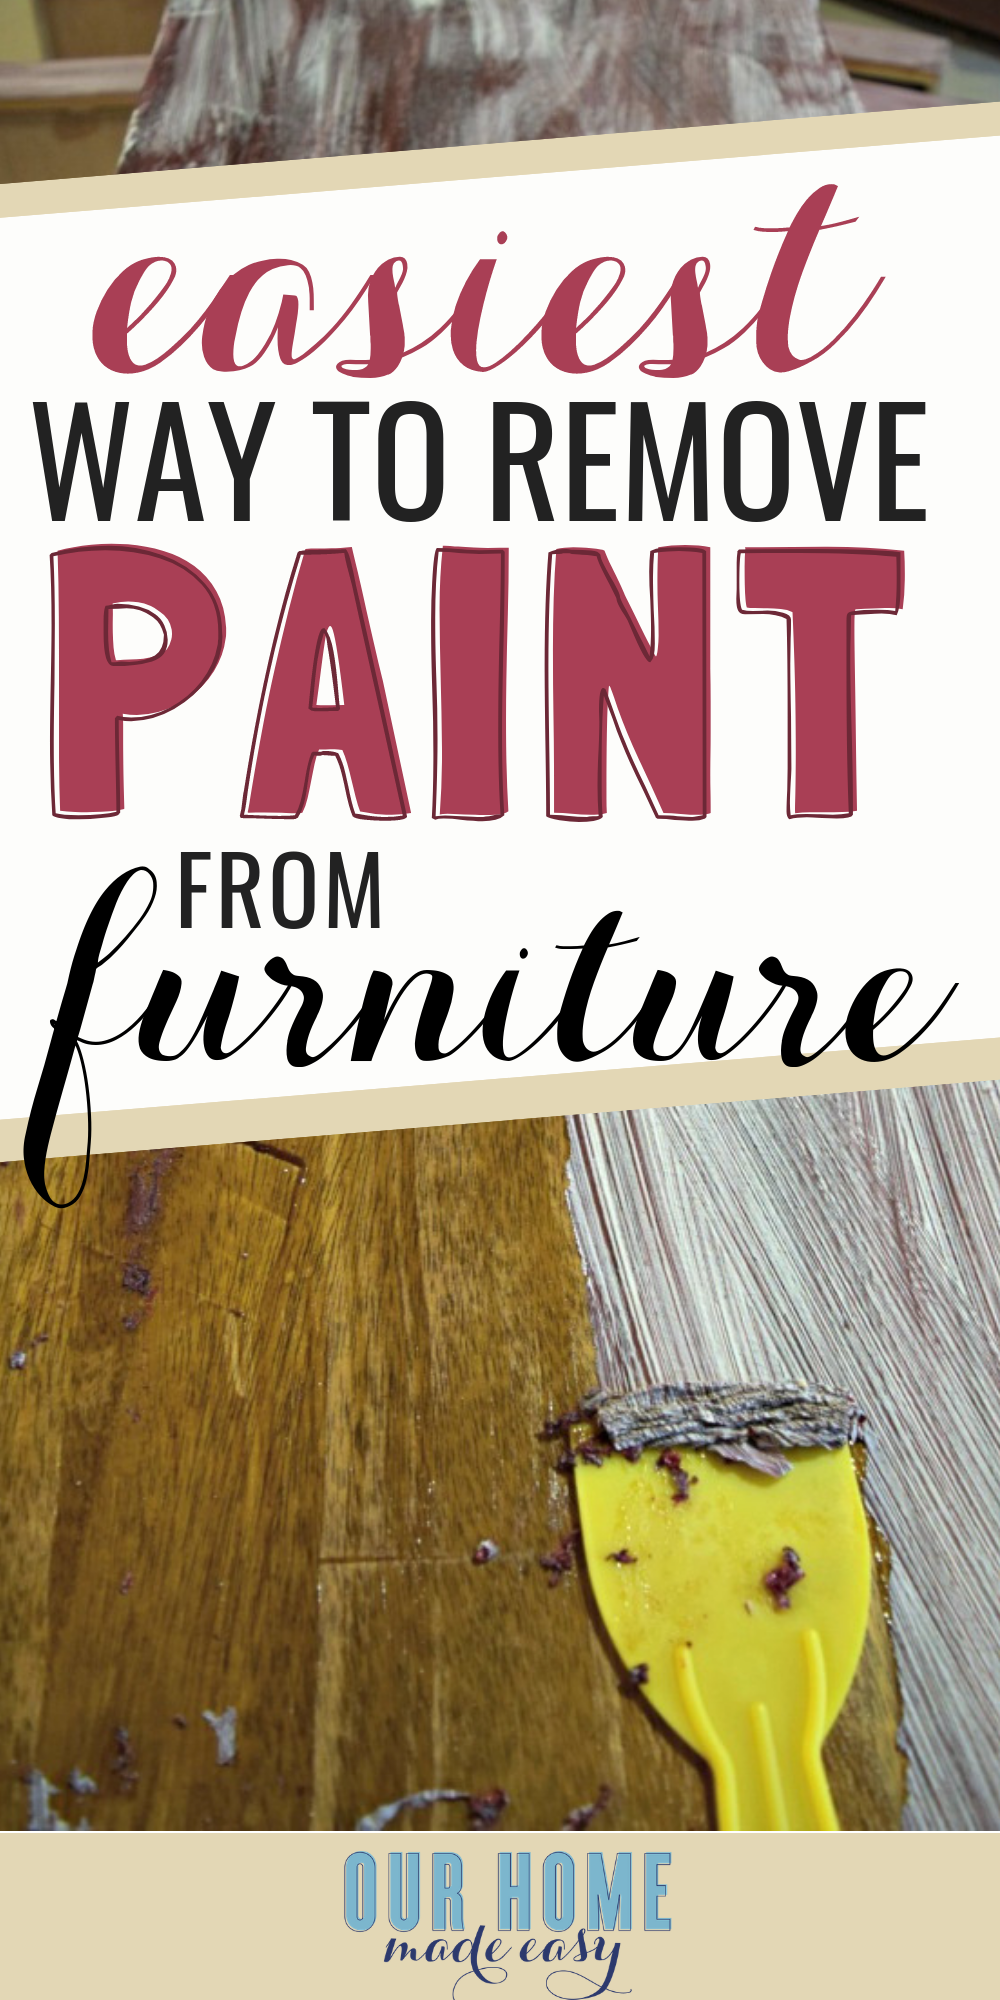 Here is how to easily remove paint from wood furniture! Choose this method to remove paint from old furniture #ourhomemadeeasy #homedecor #paint